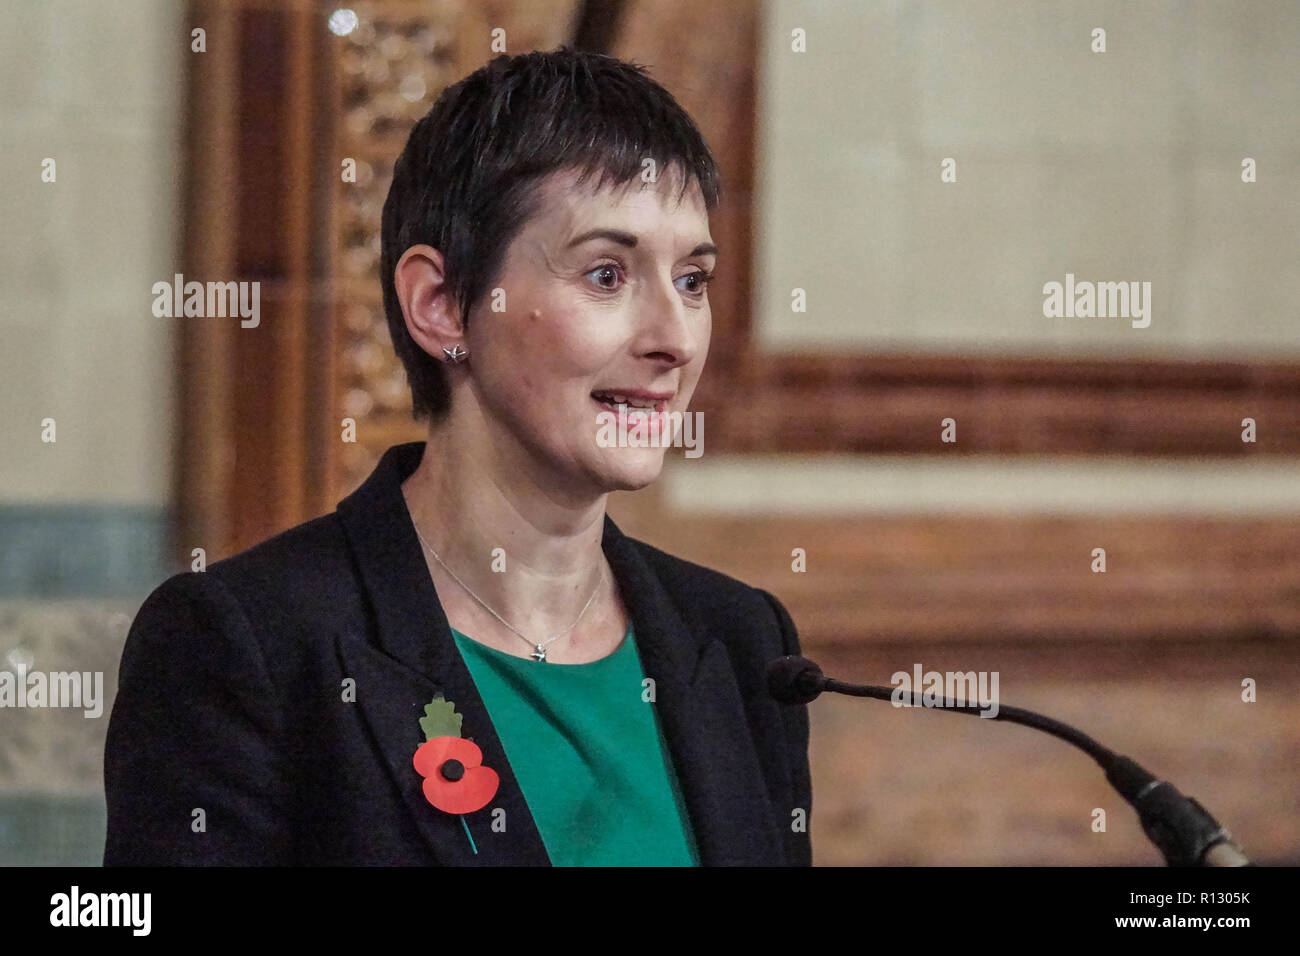 London, UK. 08 November 2018. London, England. Caroline Pidgeon at Lib Dems hold GLA 2020 hustings in the David Lloyd George Room at the National Liberal Club. Reetendra Nath Banerji, Rob Blackie, Caroline Pidgeon, Charley Hasted, Irina Von Wiese, Chris Maines, Hina Bokhari and Joyce Onstad all addressed Liberal Democrat Party members with an view to selection as candidates for the Greater London Assembly election of 2020. © Peter Hogan/Alamy Live News - Stock Image